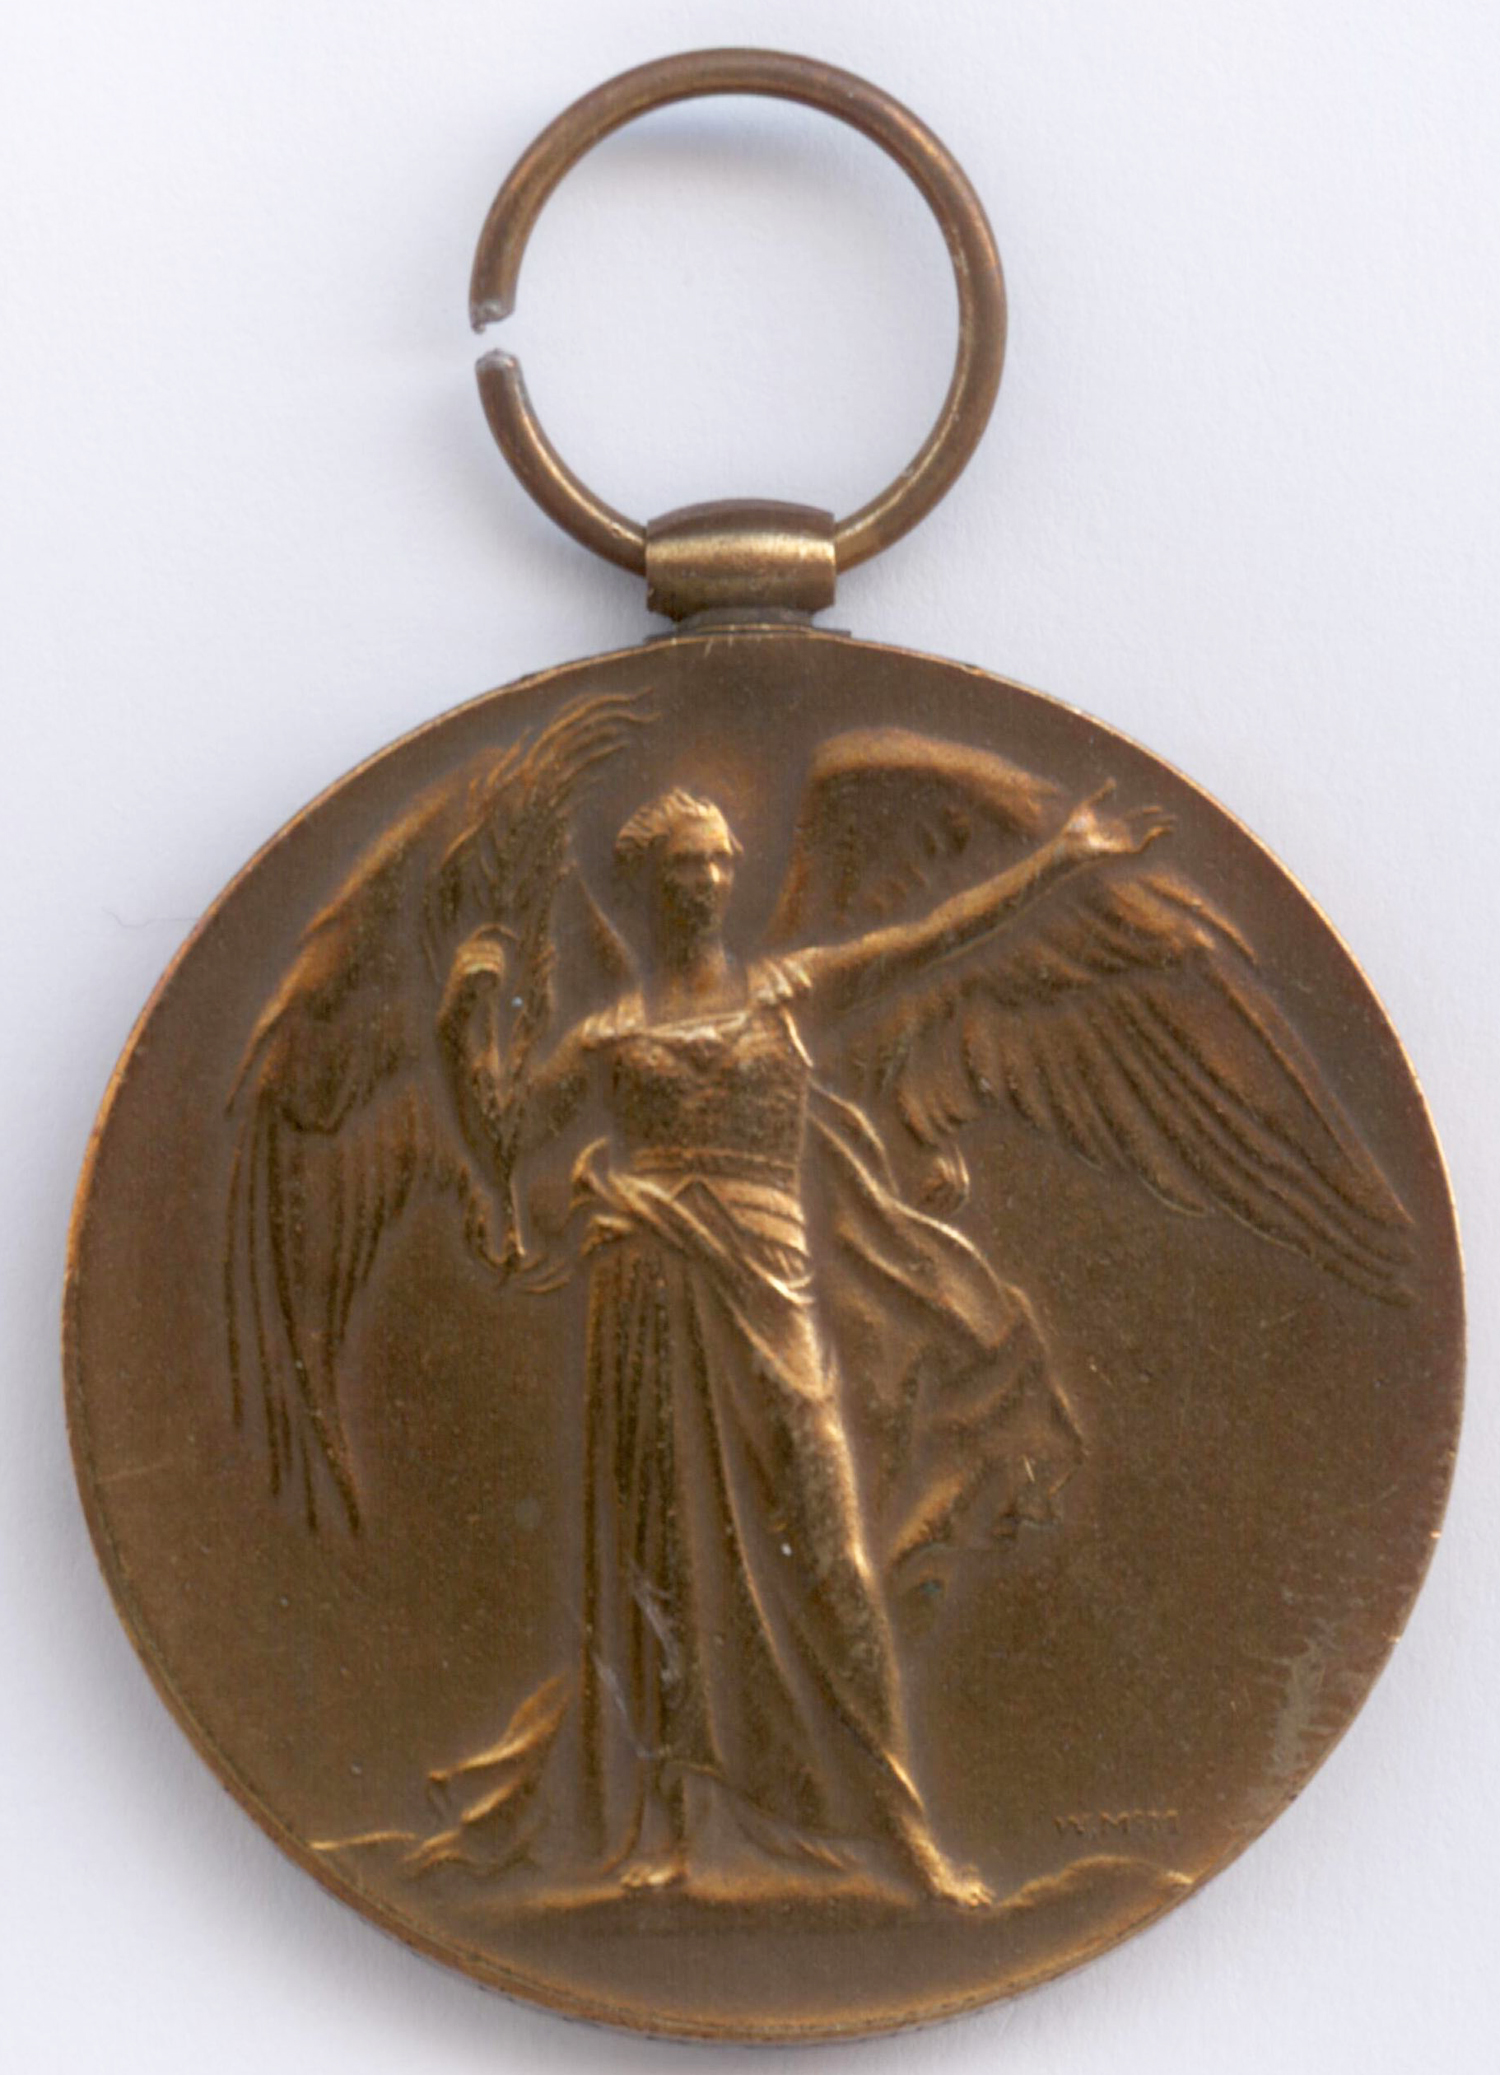 The Type IR Victory Medal issued to Major H. P. H. Harris RFA. This medal was originally issued as a Type I Victory Medal on 10 June 1920; was returned for re-furbishing on 20 October 1920 and reissued as a Type IR Victory Medal the same day.